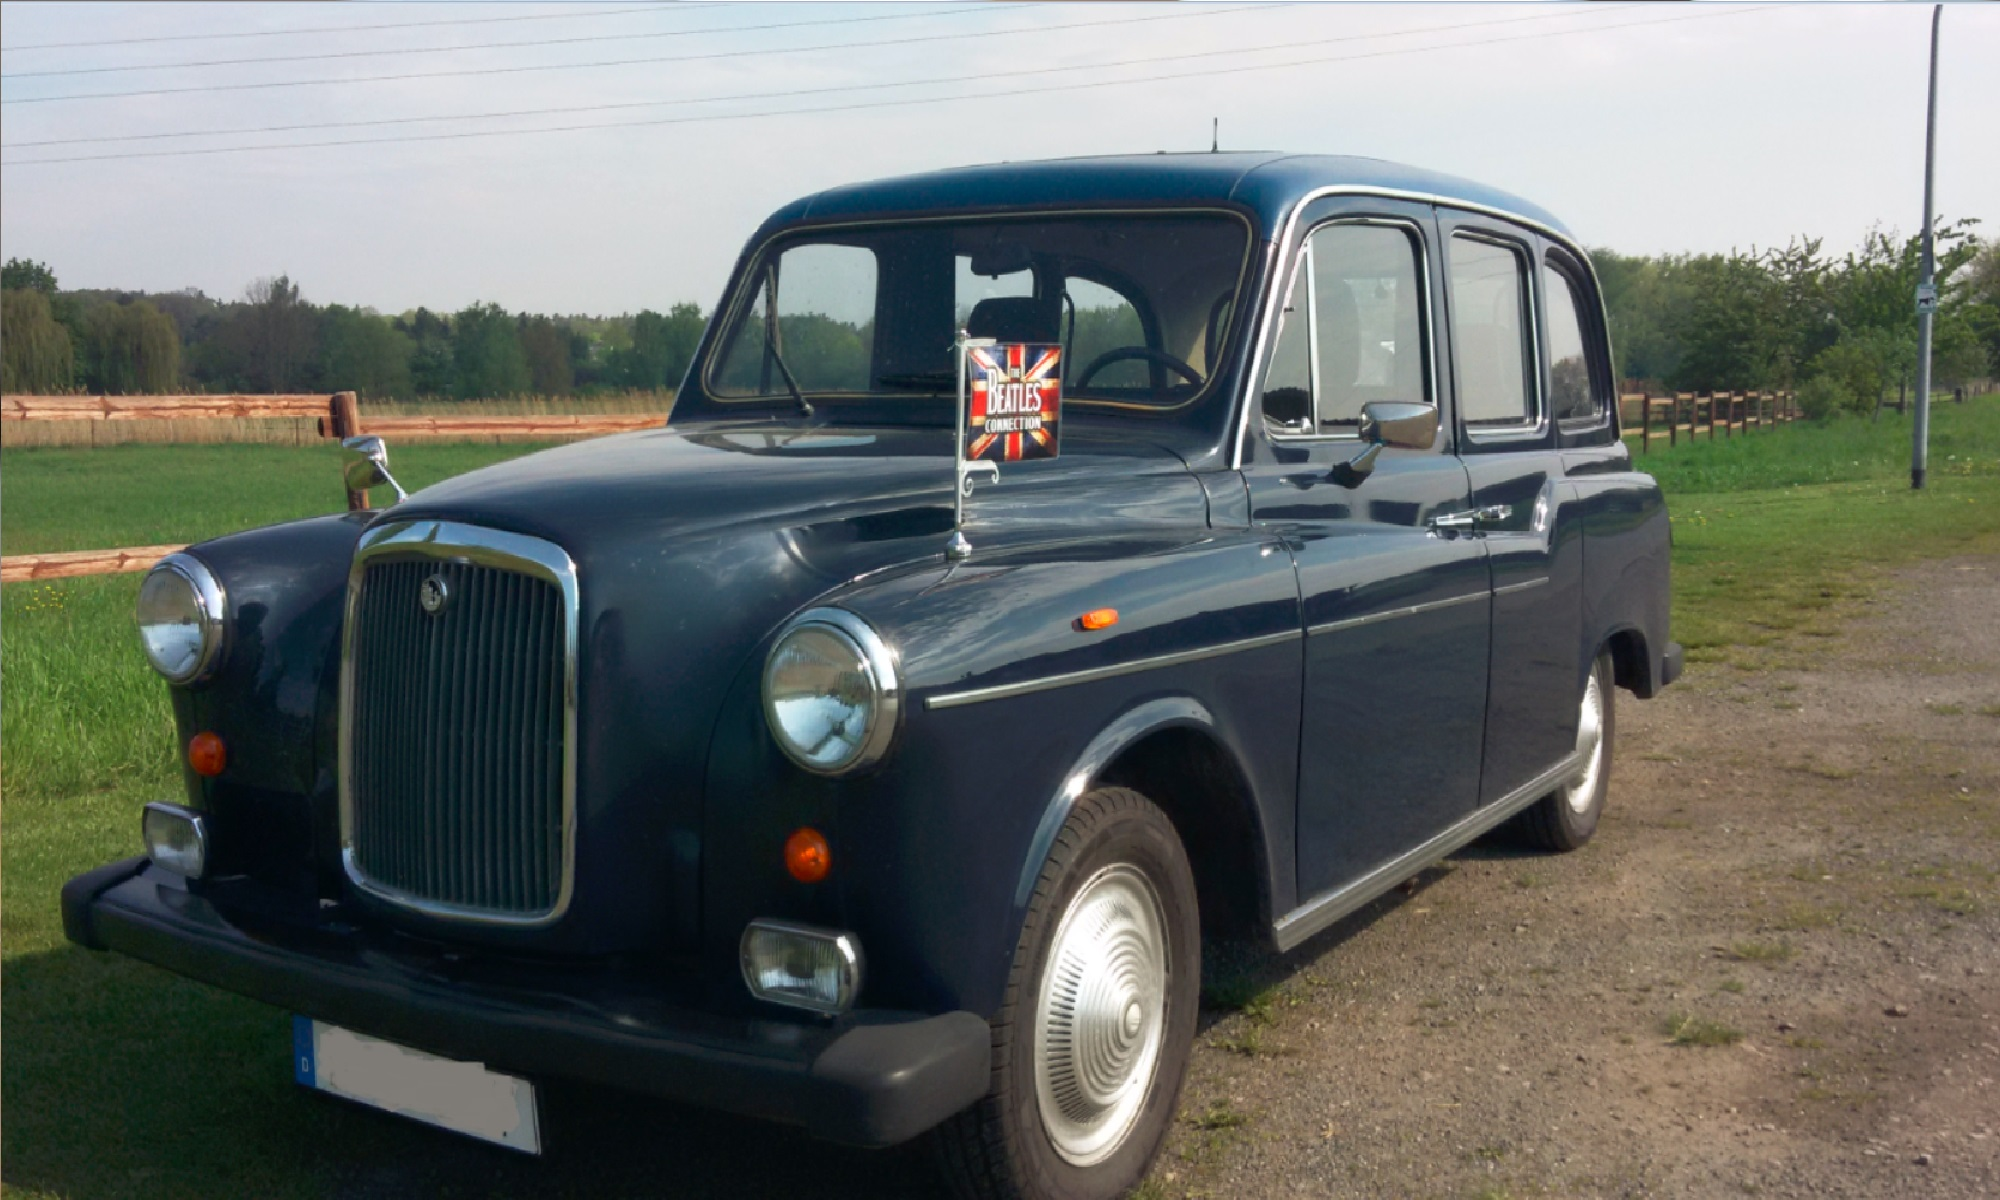 London Taxi - FX4 - Fairway - LTI